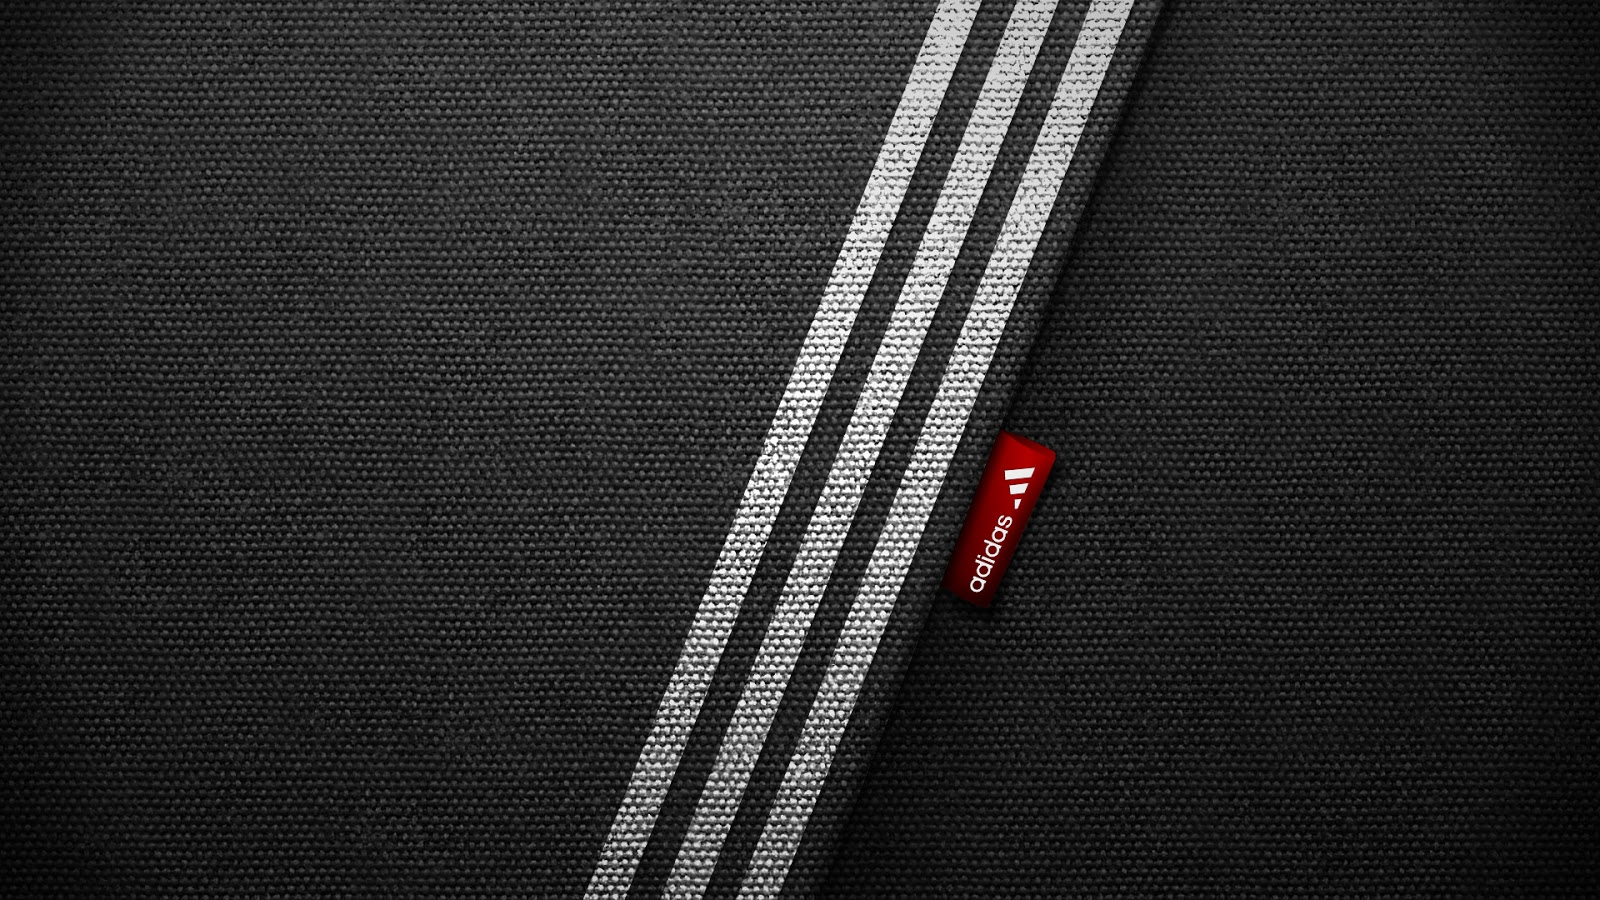 Awesome adidas wallpapers for Lewis motor sales lafayette in